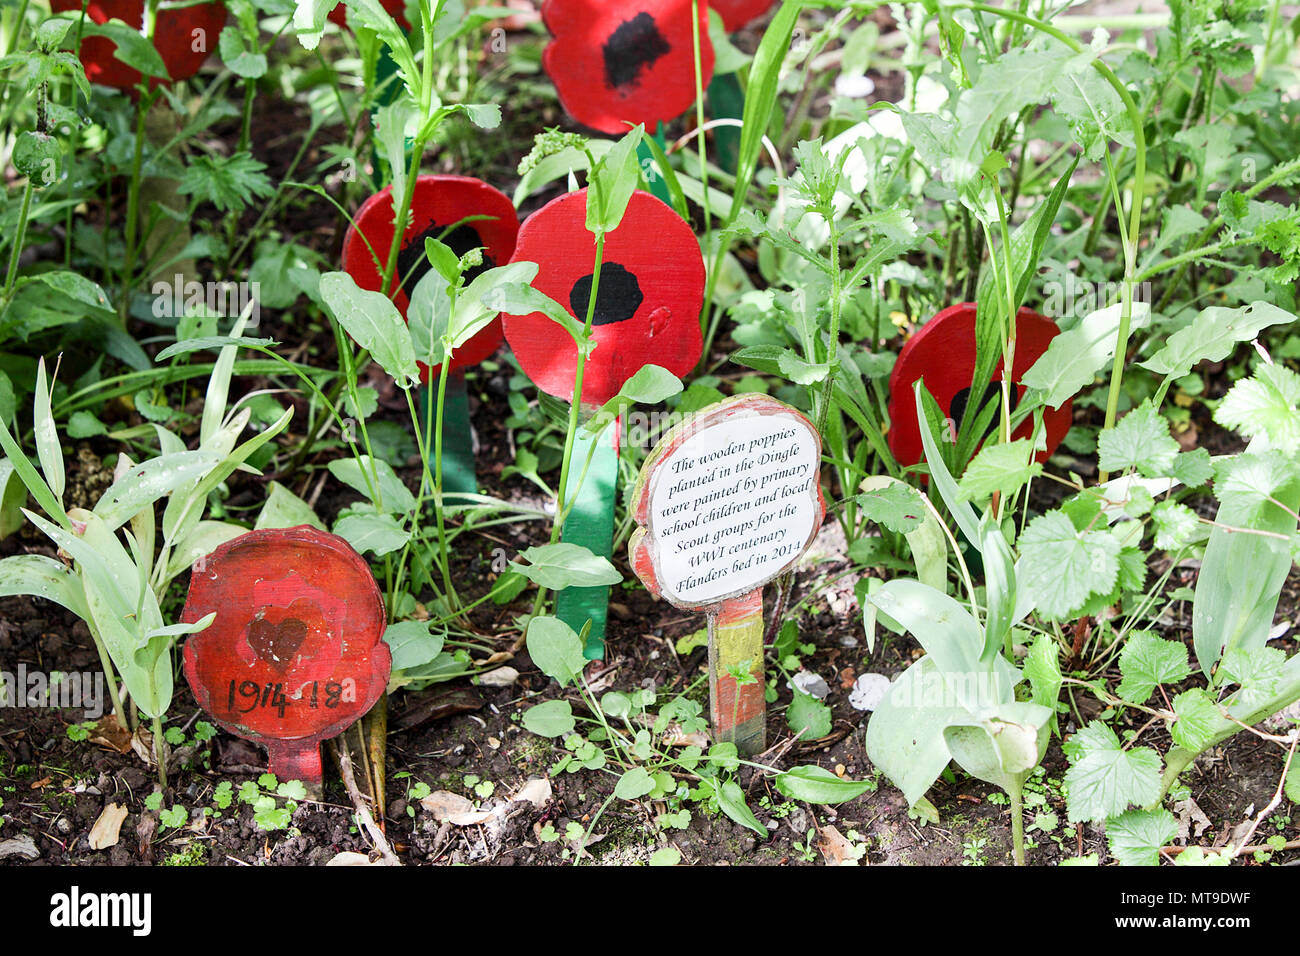 The First World War Memorial garden, situated within The Dingle, a fine garden area set in The Quarry in Shrewsbury, England. - Stock Image